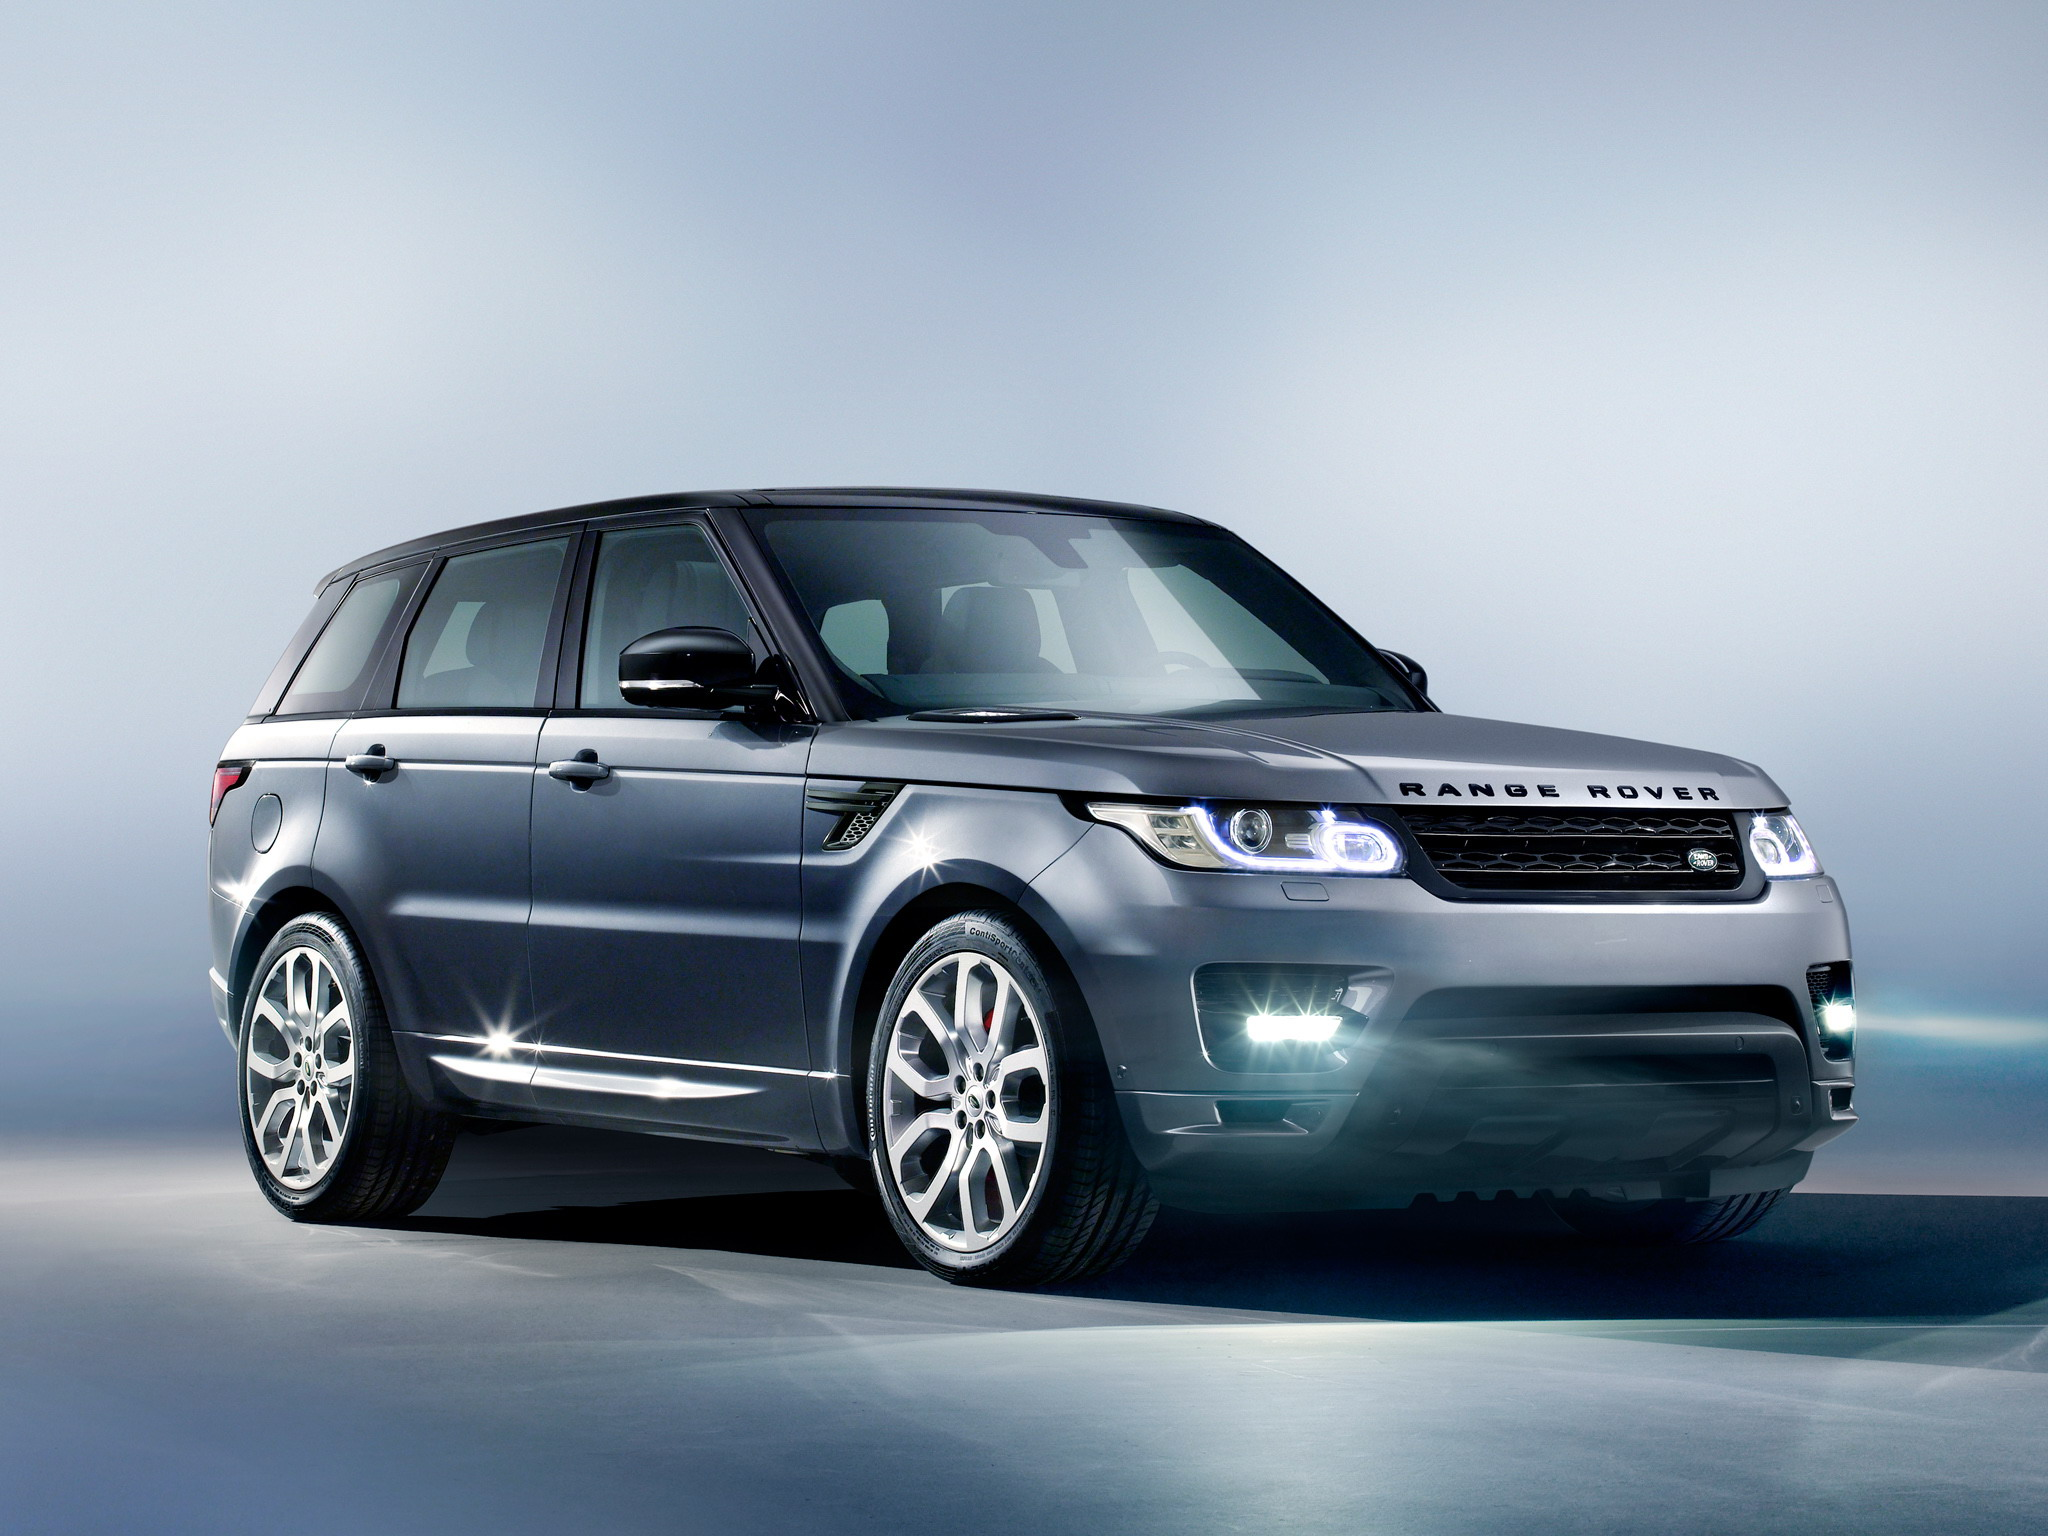 Land Rover Range Sport Reviews Specs Prices Photos And Electric Brake Controller Australian Owners Videos Top Speed